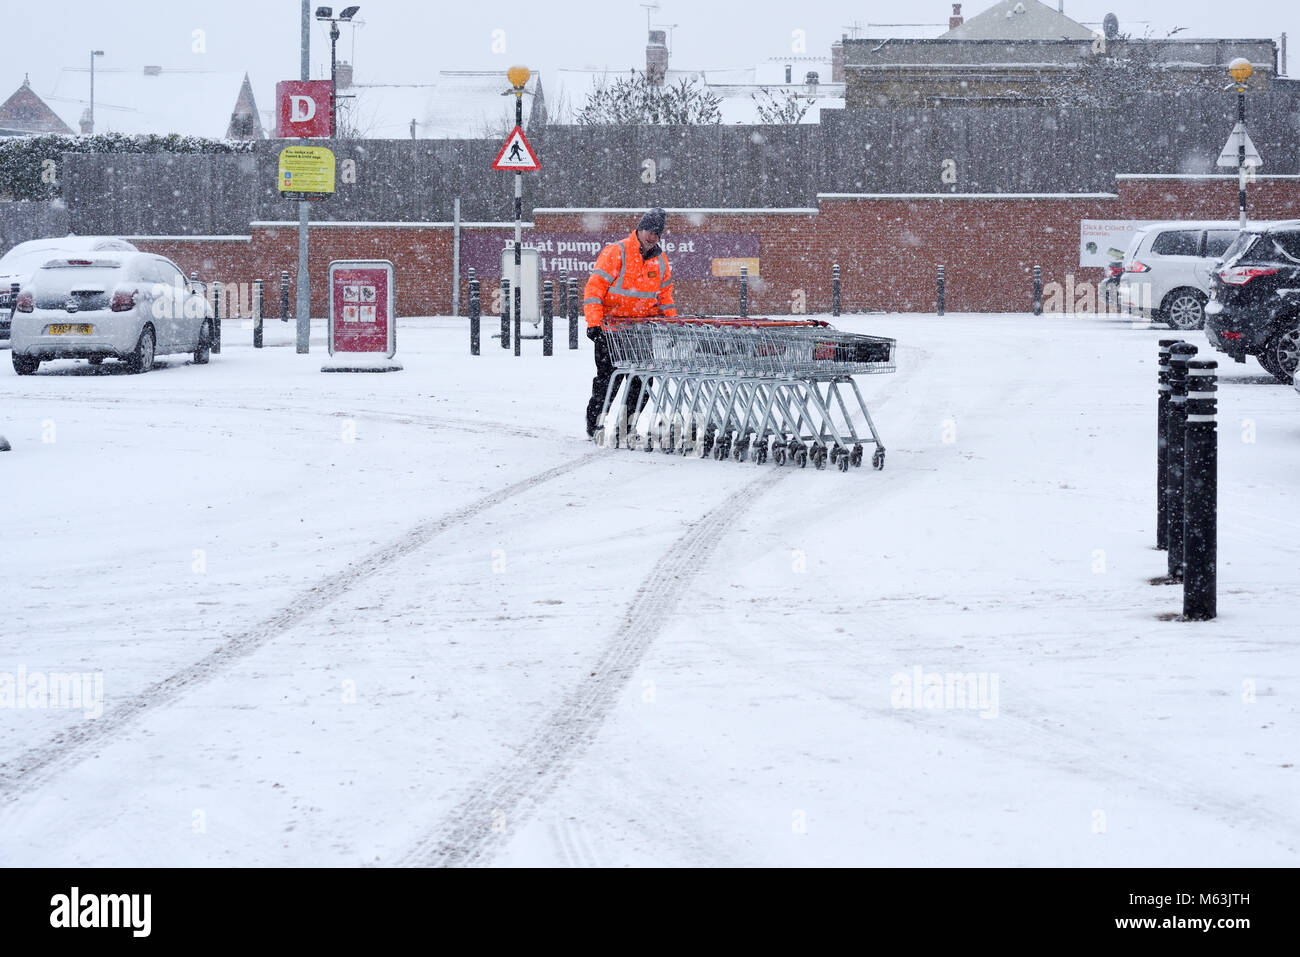 Mansfield, Nottinghamshire, UK: 28th February 2018: severe weather in around Mansfield.Very heavy snow roads blocked - Stock Image